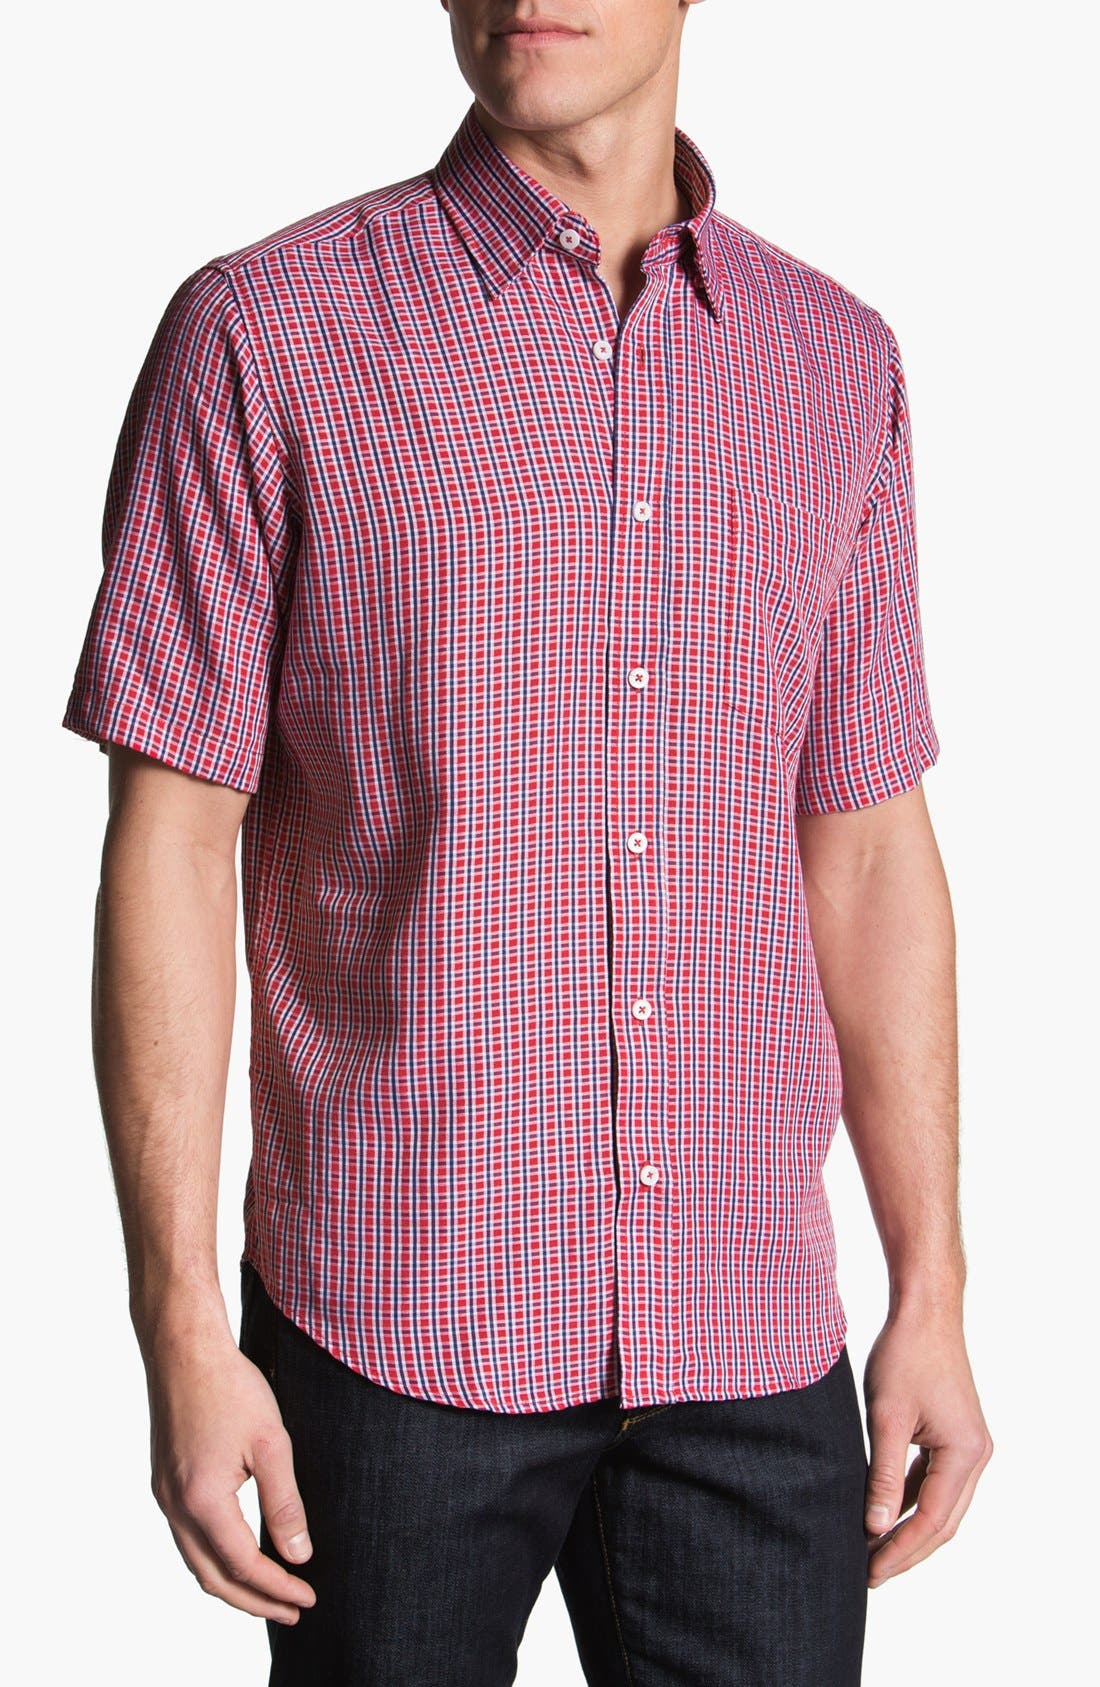 Alternate Image 1 Selected - BUGATCHI Classic Fit Short Sleeve Sport Shirt